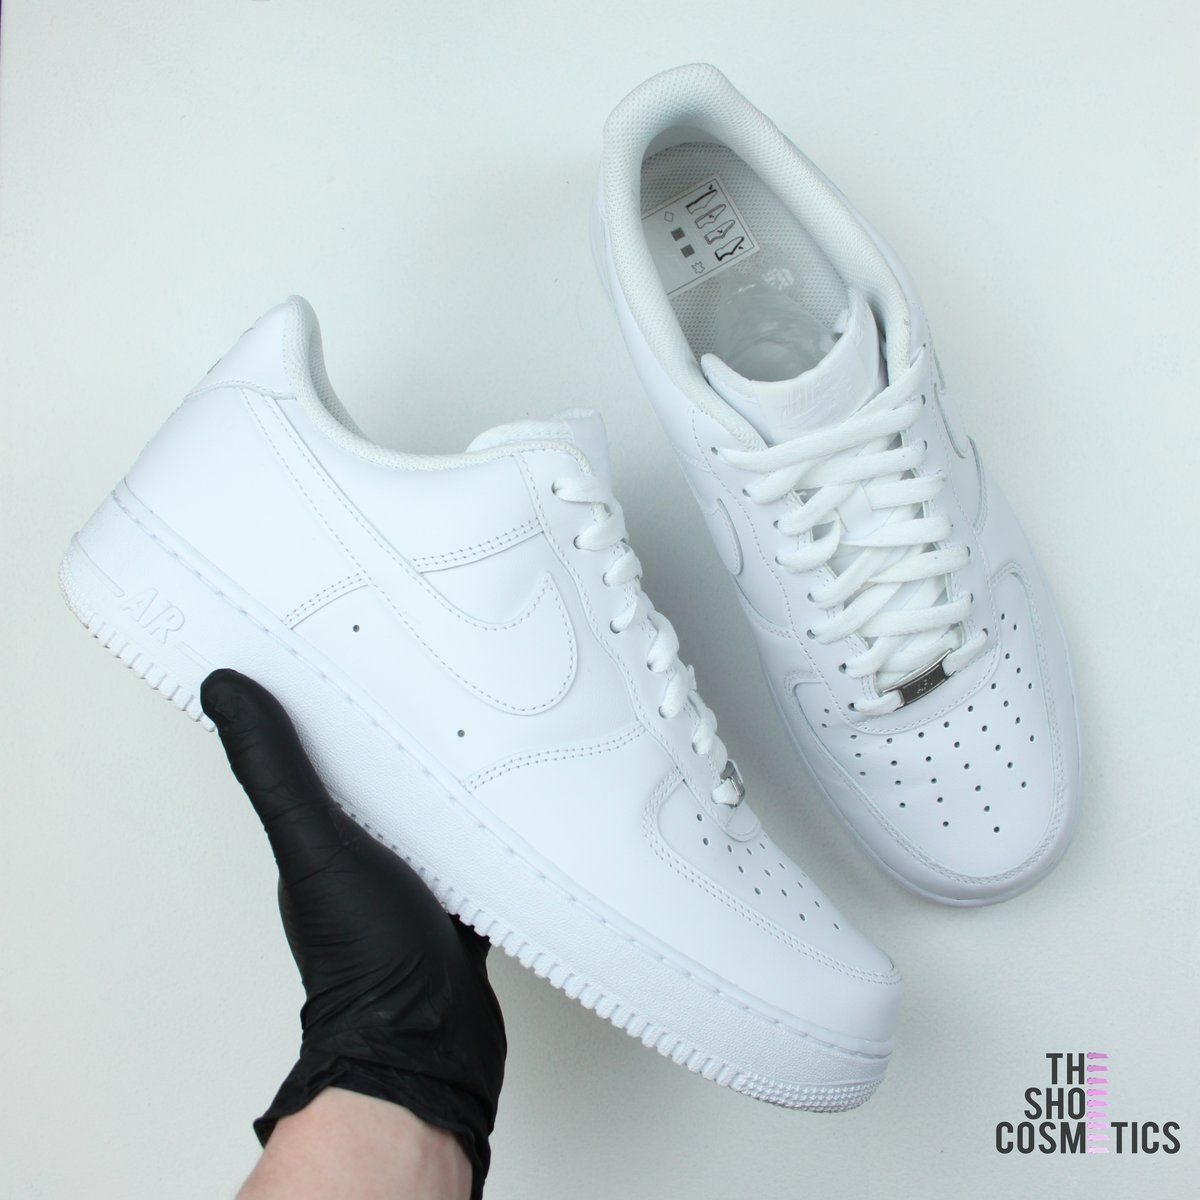 Customize your own nike air force 1 custom sneakers | My DIY